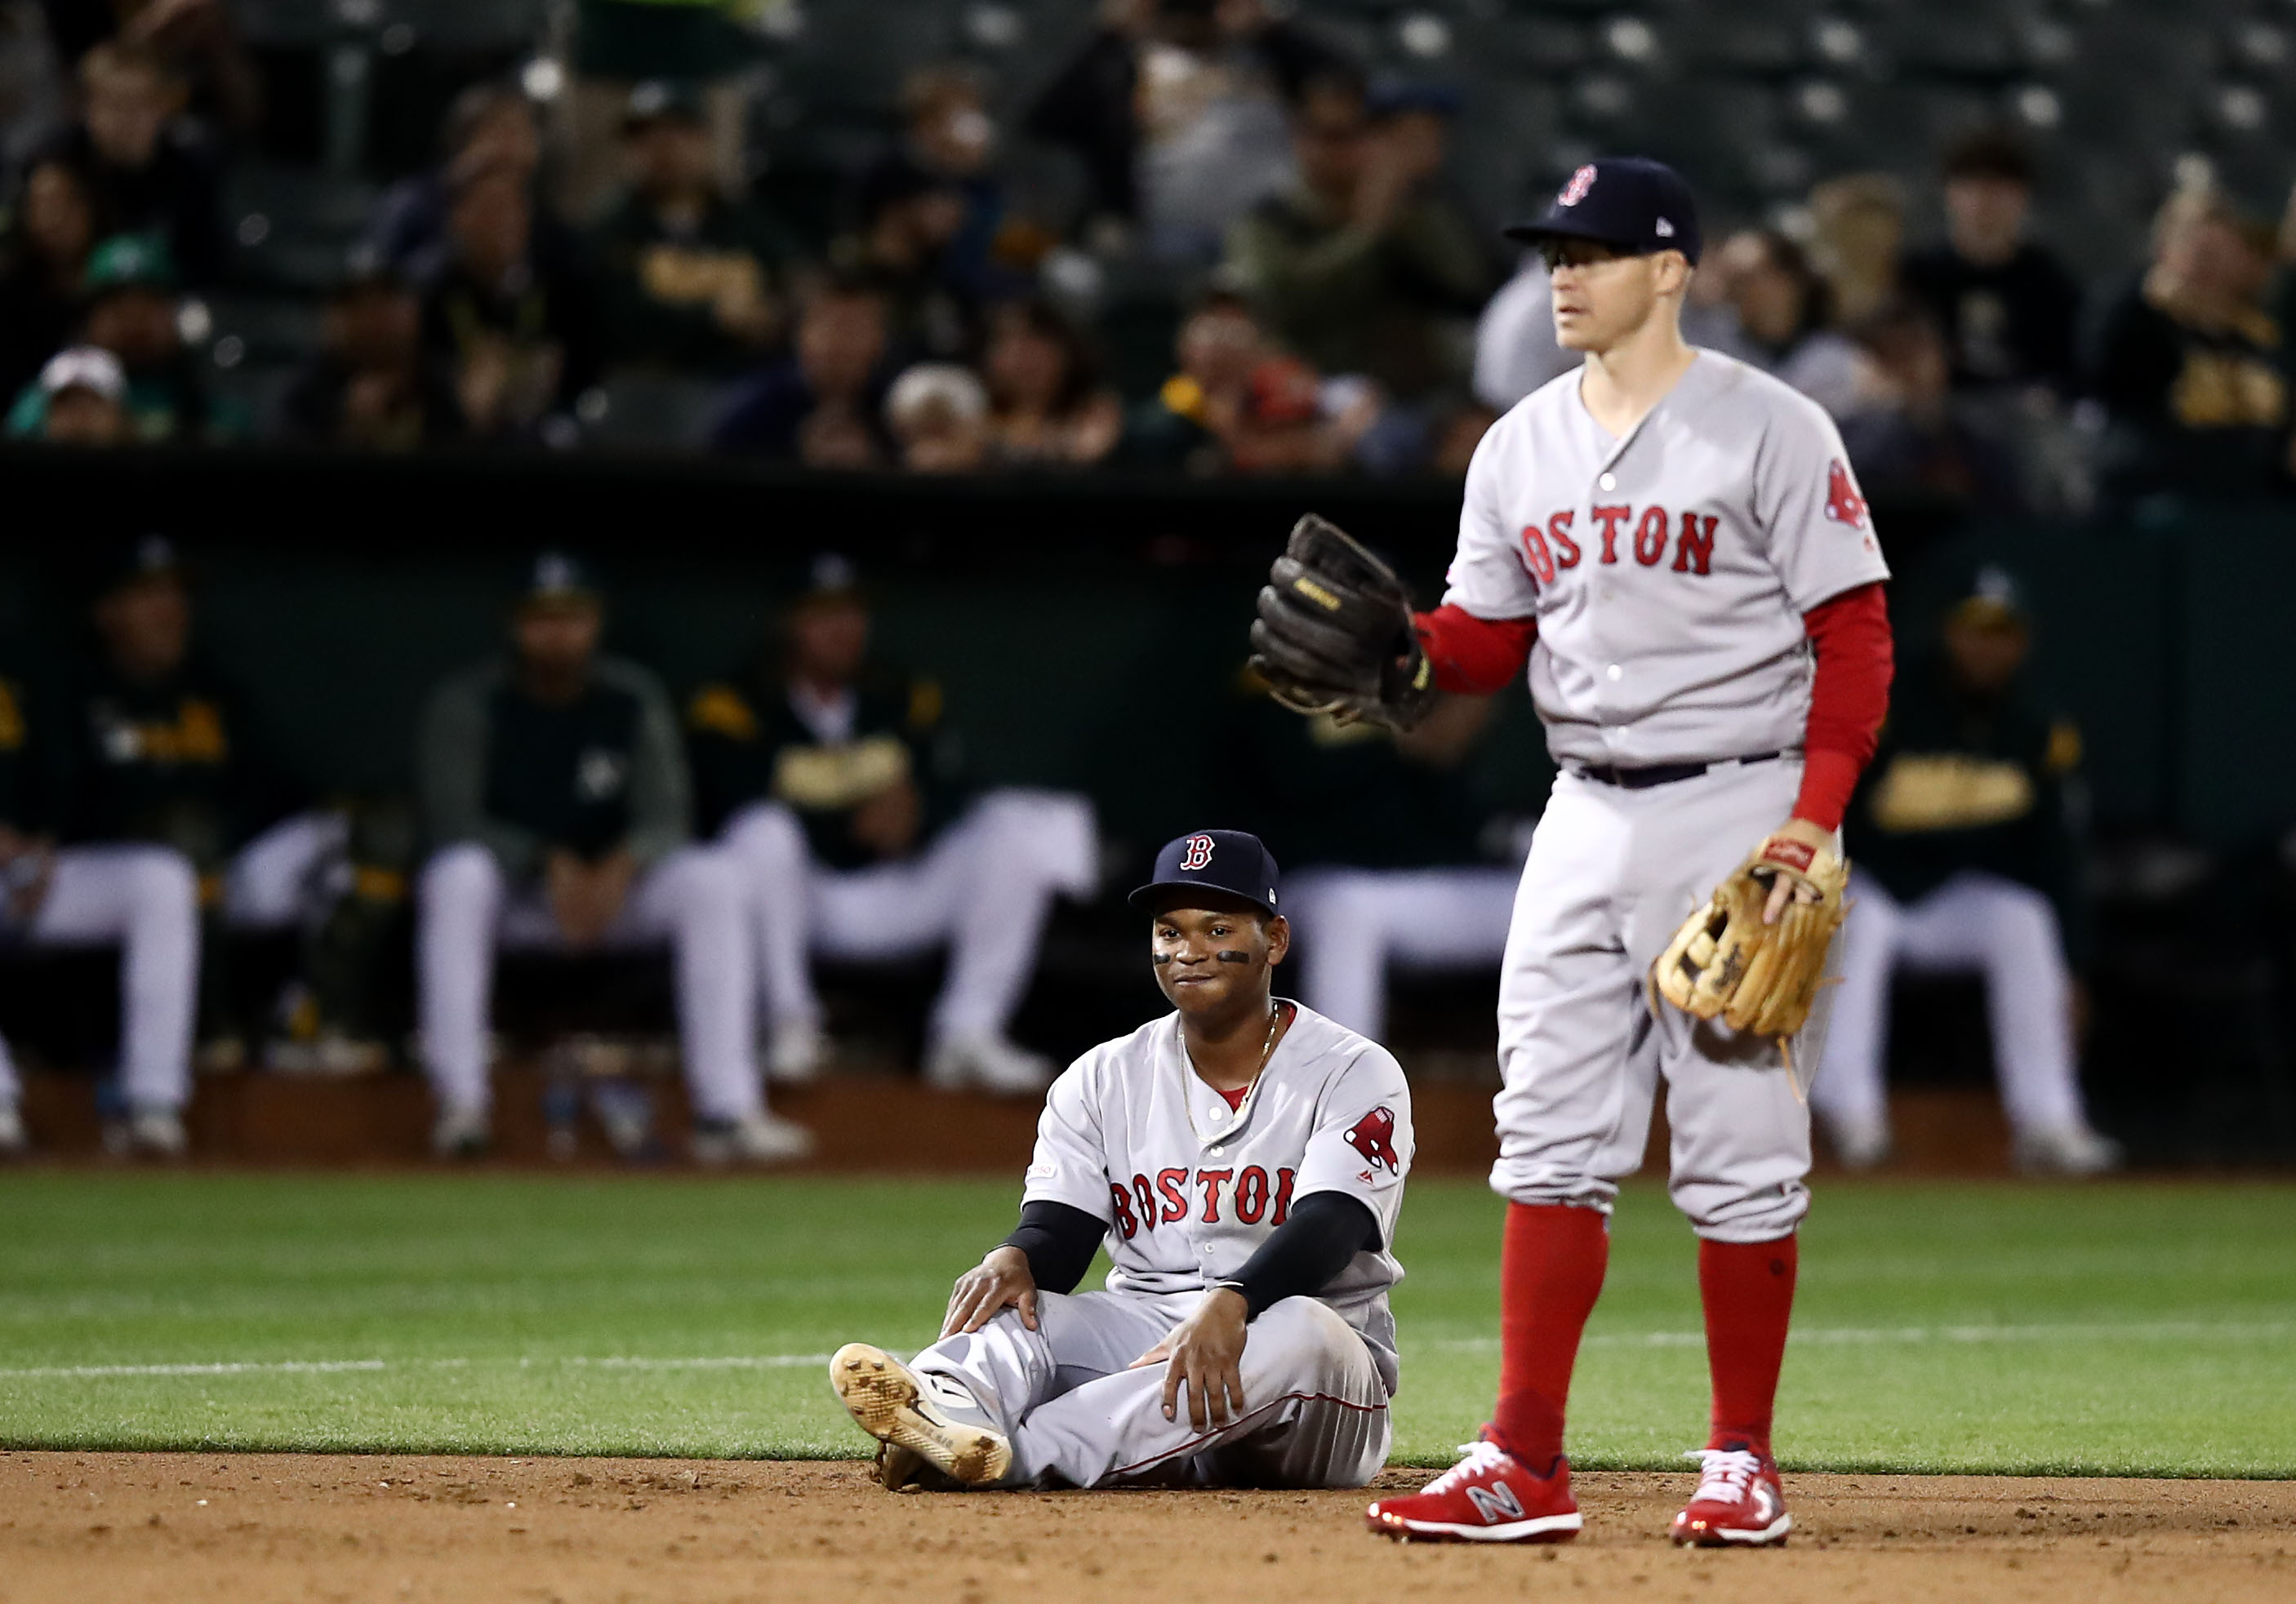 News is good on Brock Holt, Nathan Eovaldi; setback for Dustin Pedroia